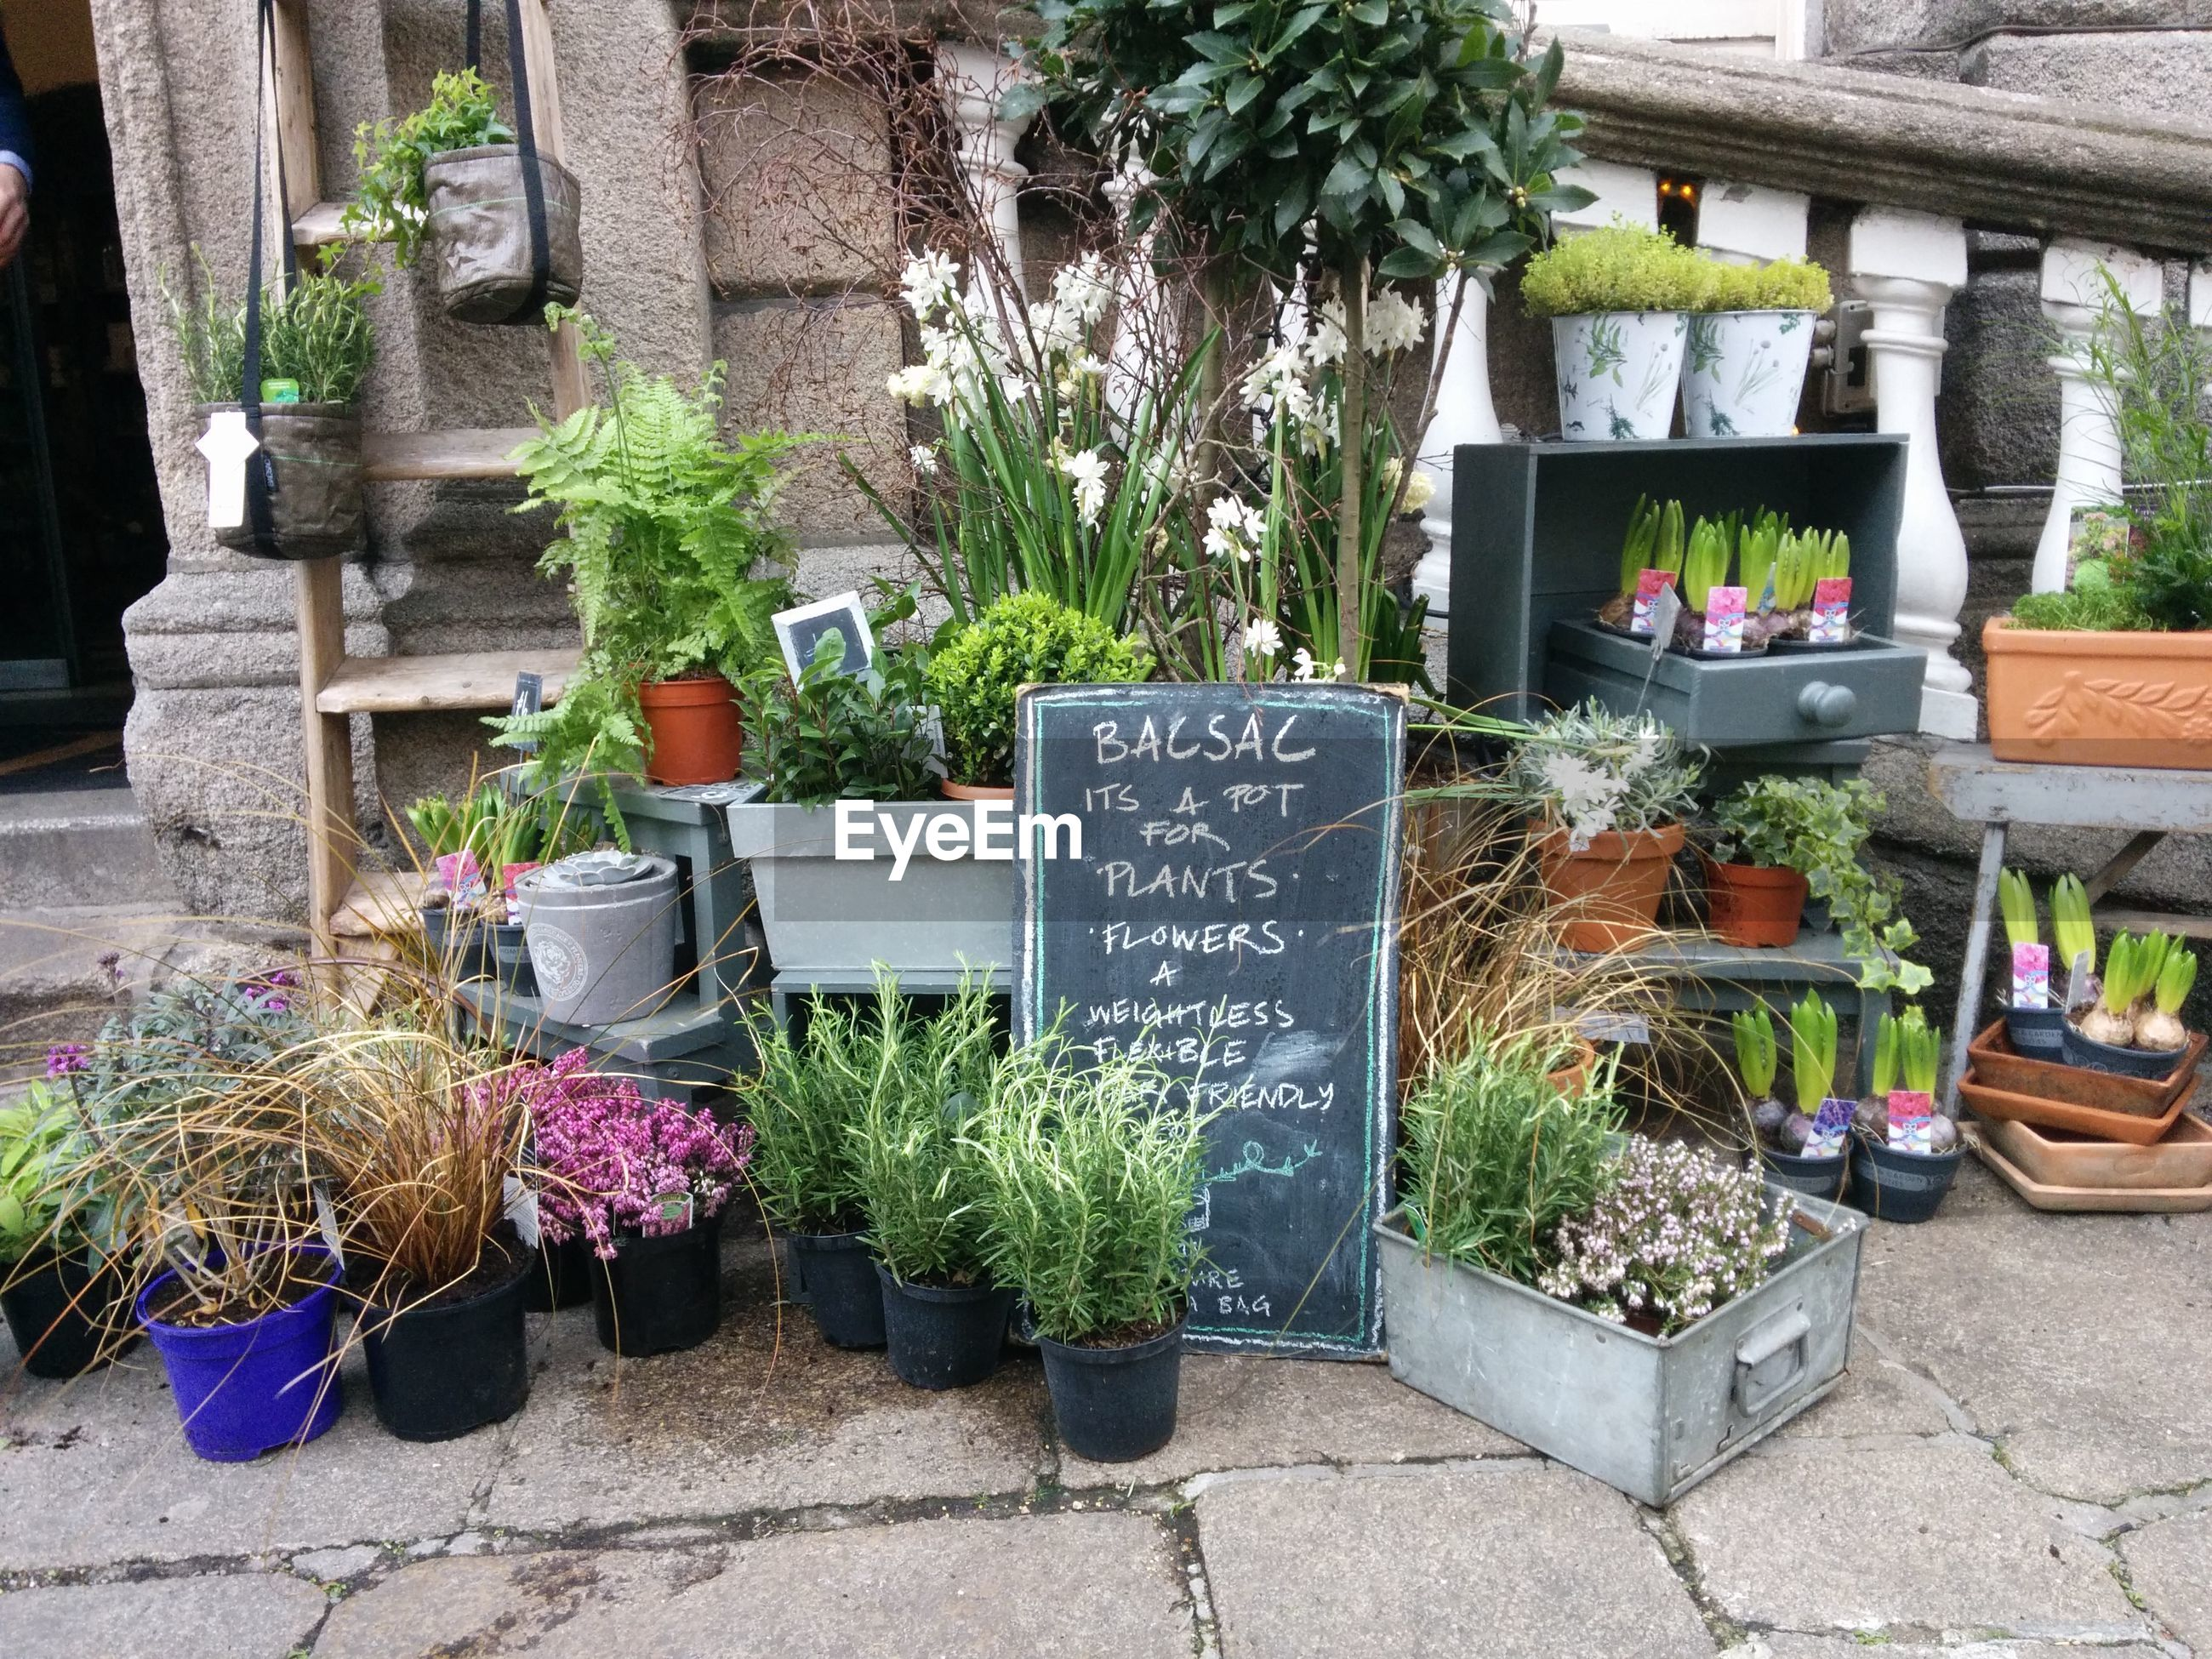 POTTED PLANTS FOR SALE AT STREET MARKET